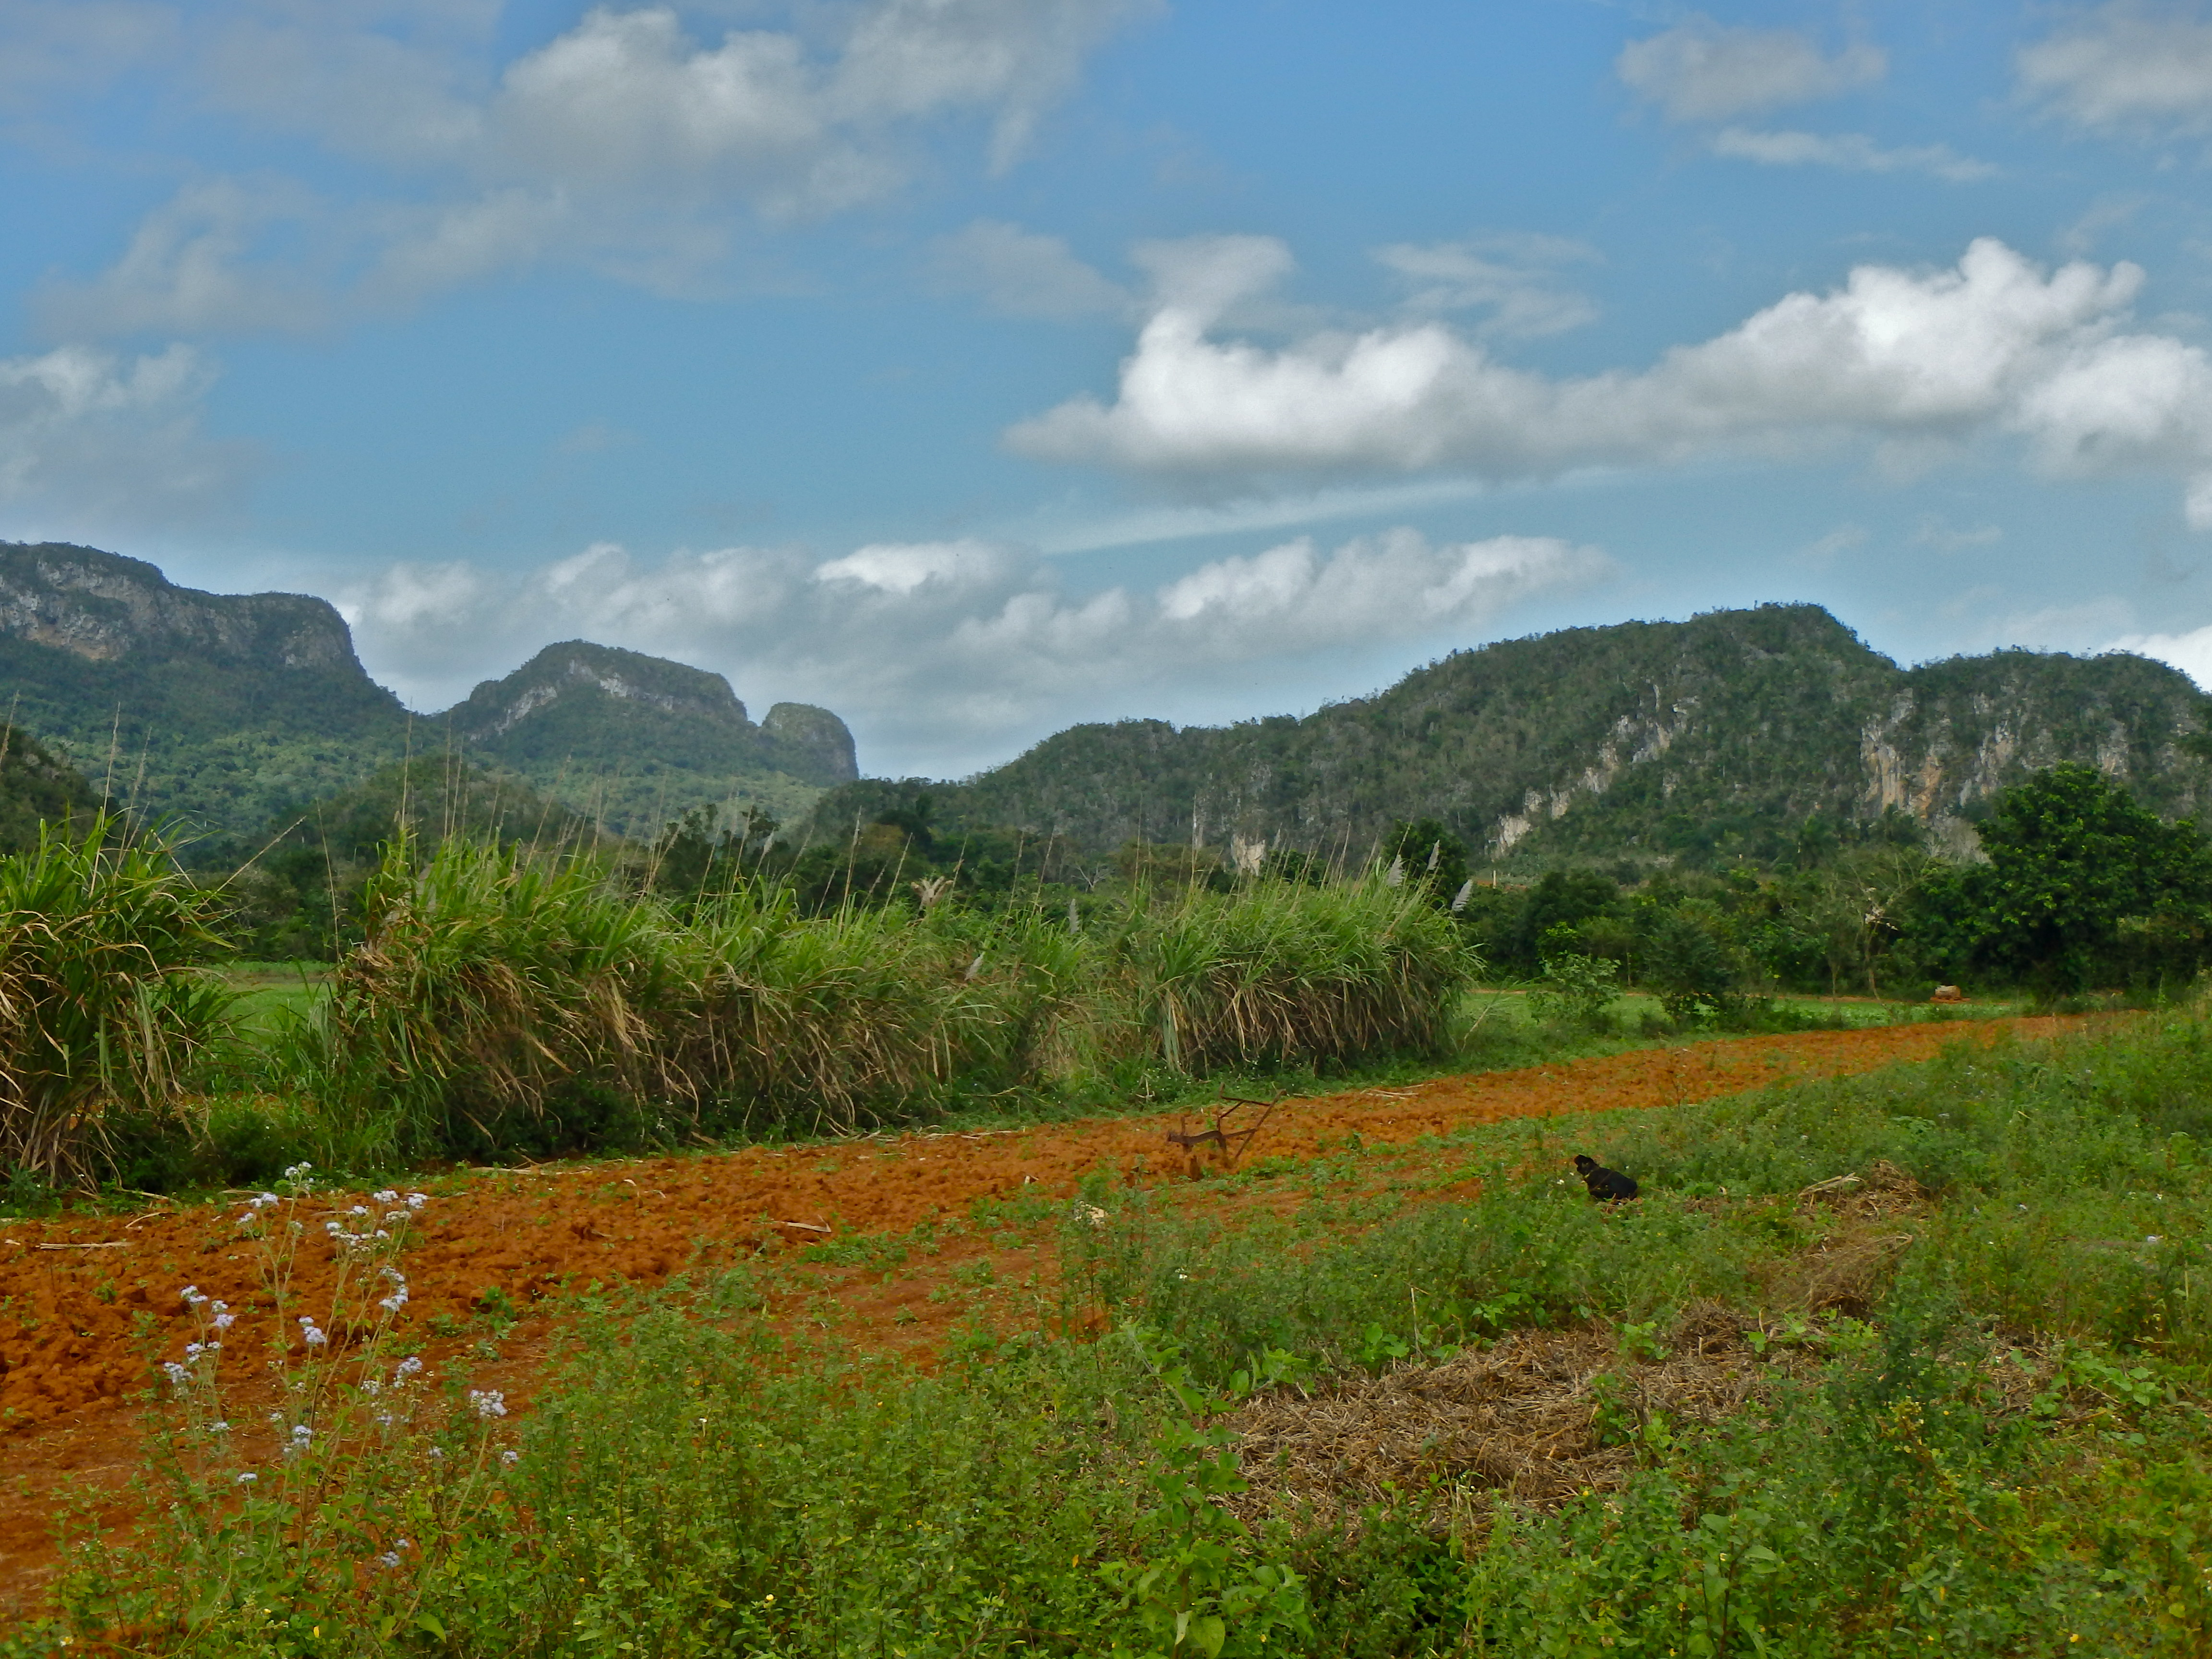 Vinales Valley, Cuba things to do in vinales valley cuba best places to visit in cuba top towns to visit in cuba